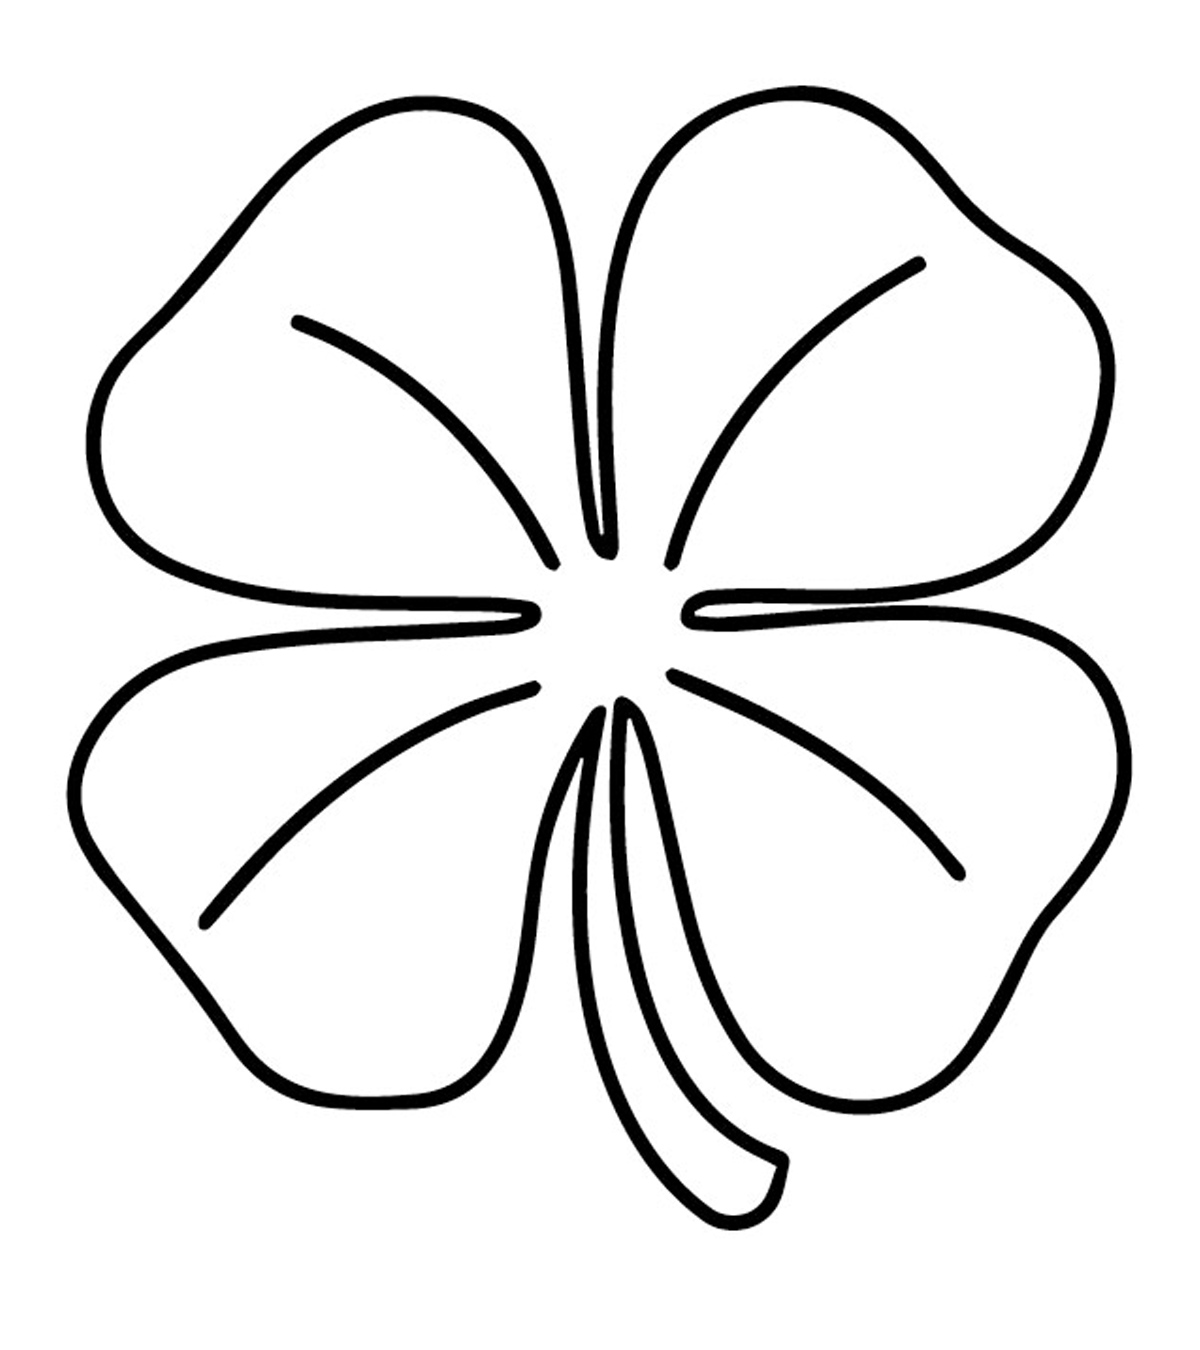 It's just a graphic of Four Leaf Clover Printable Template with regard to cut out